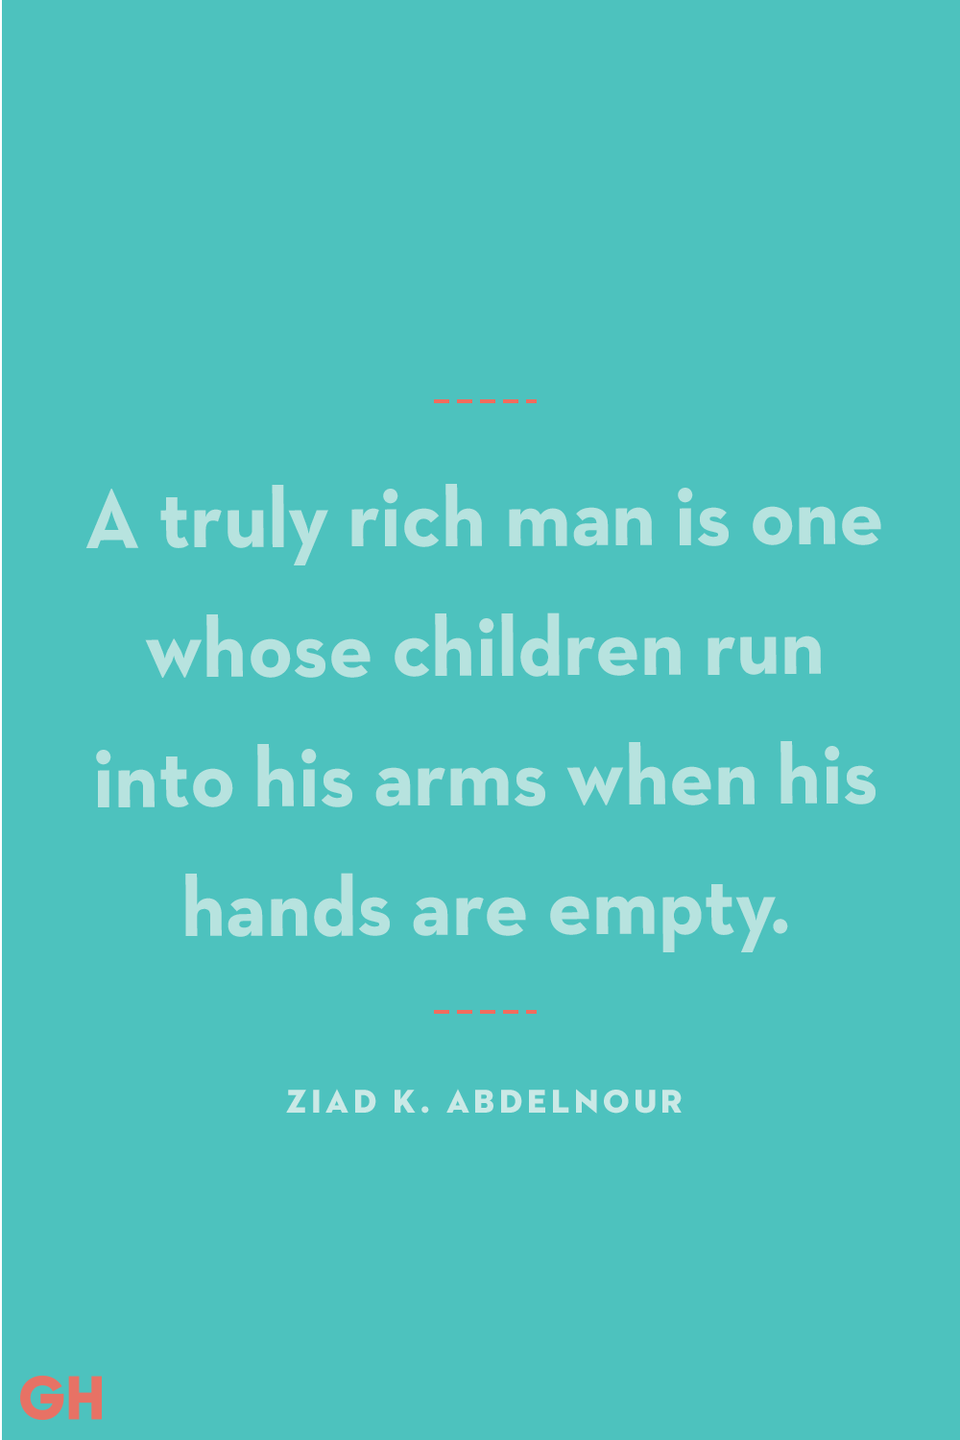 <p>A truly rich man is one whose children run into his arms when his hands are empty.</p>